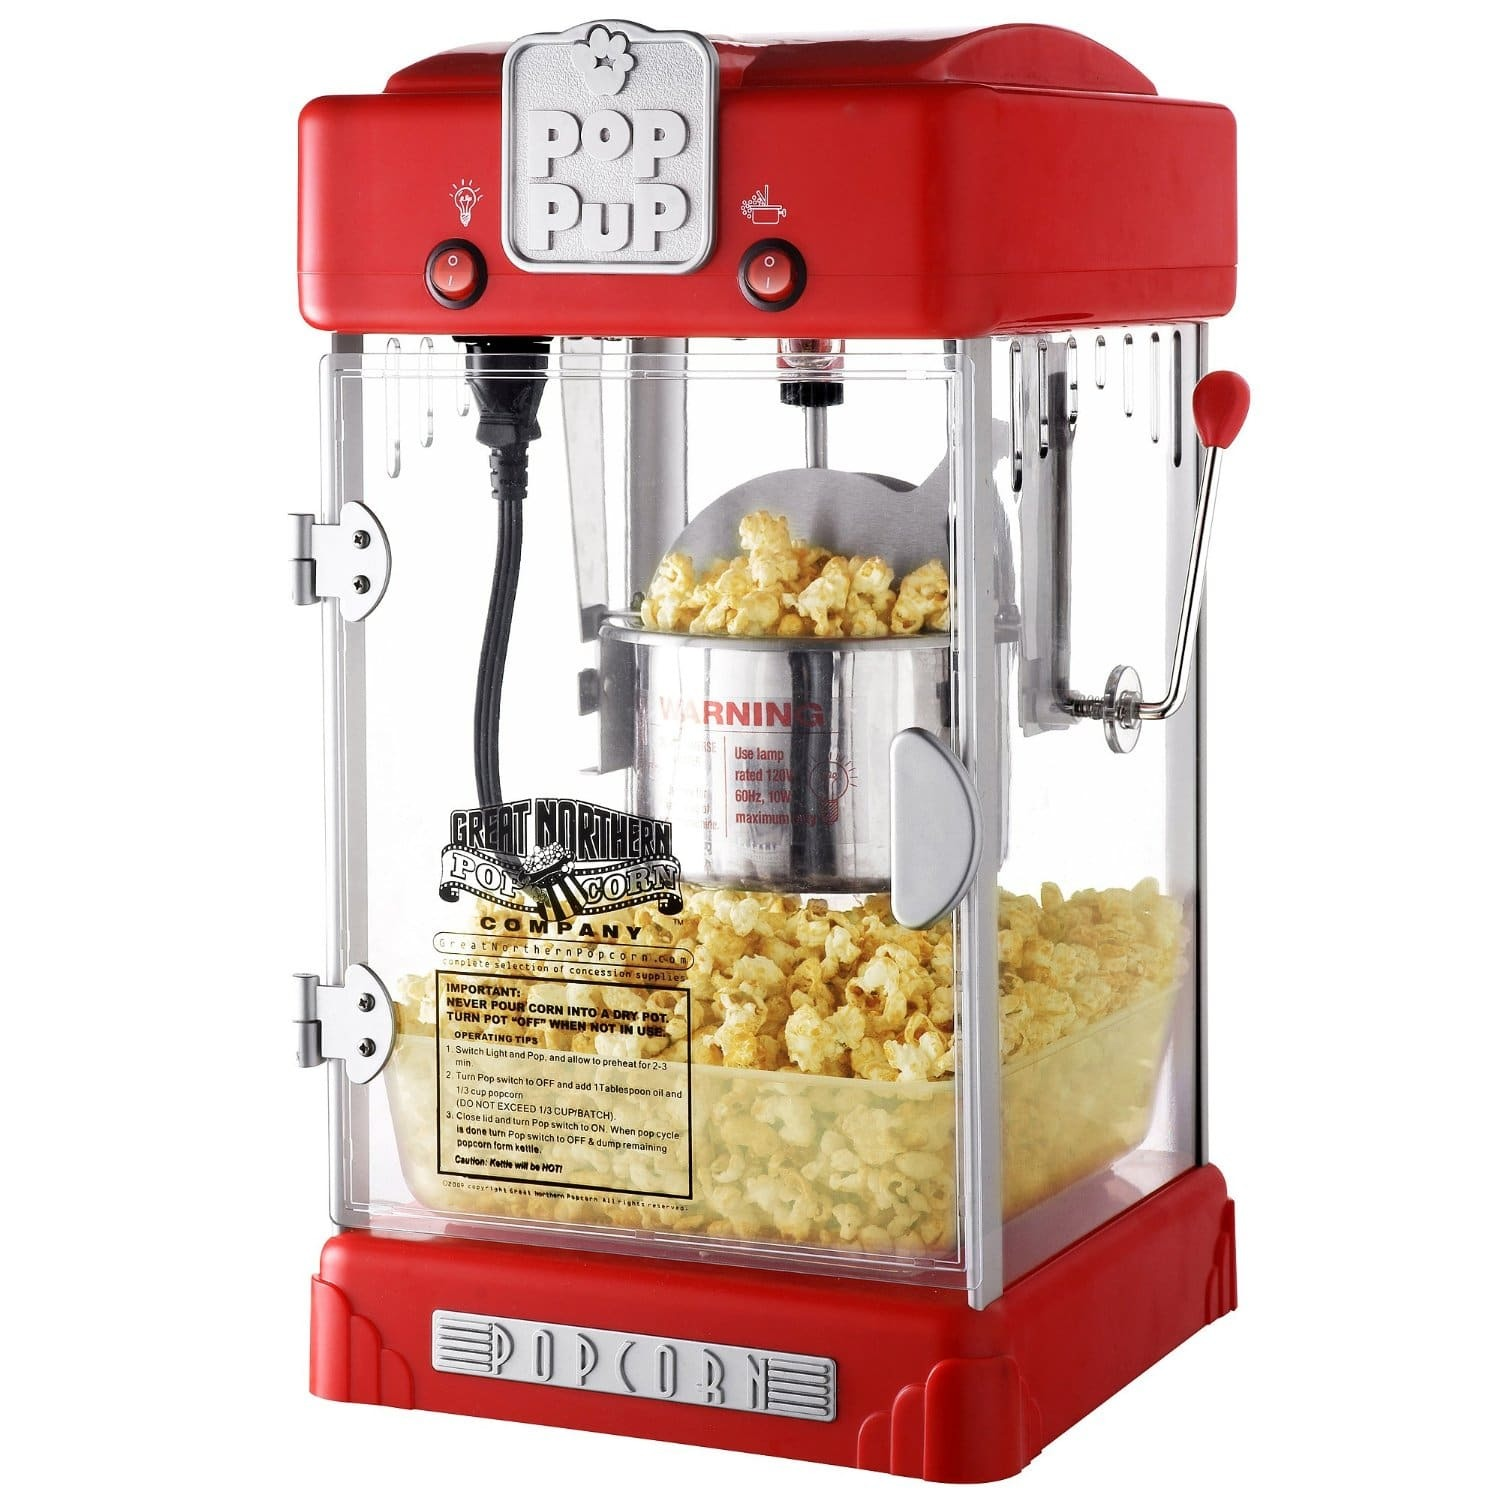 christmas gift ideas for sister - retro popcorn popper